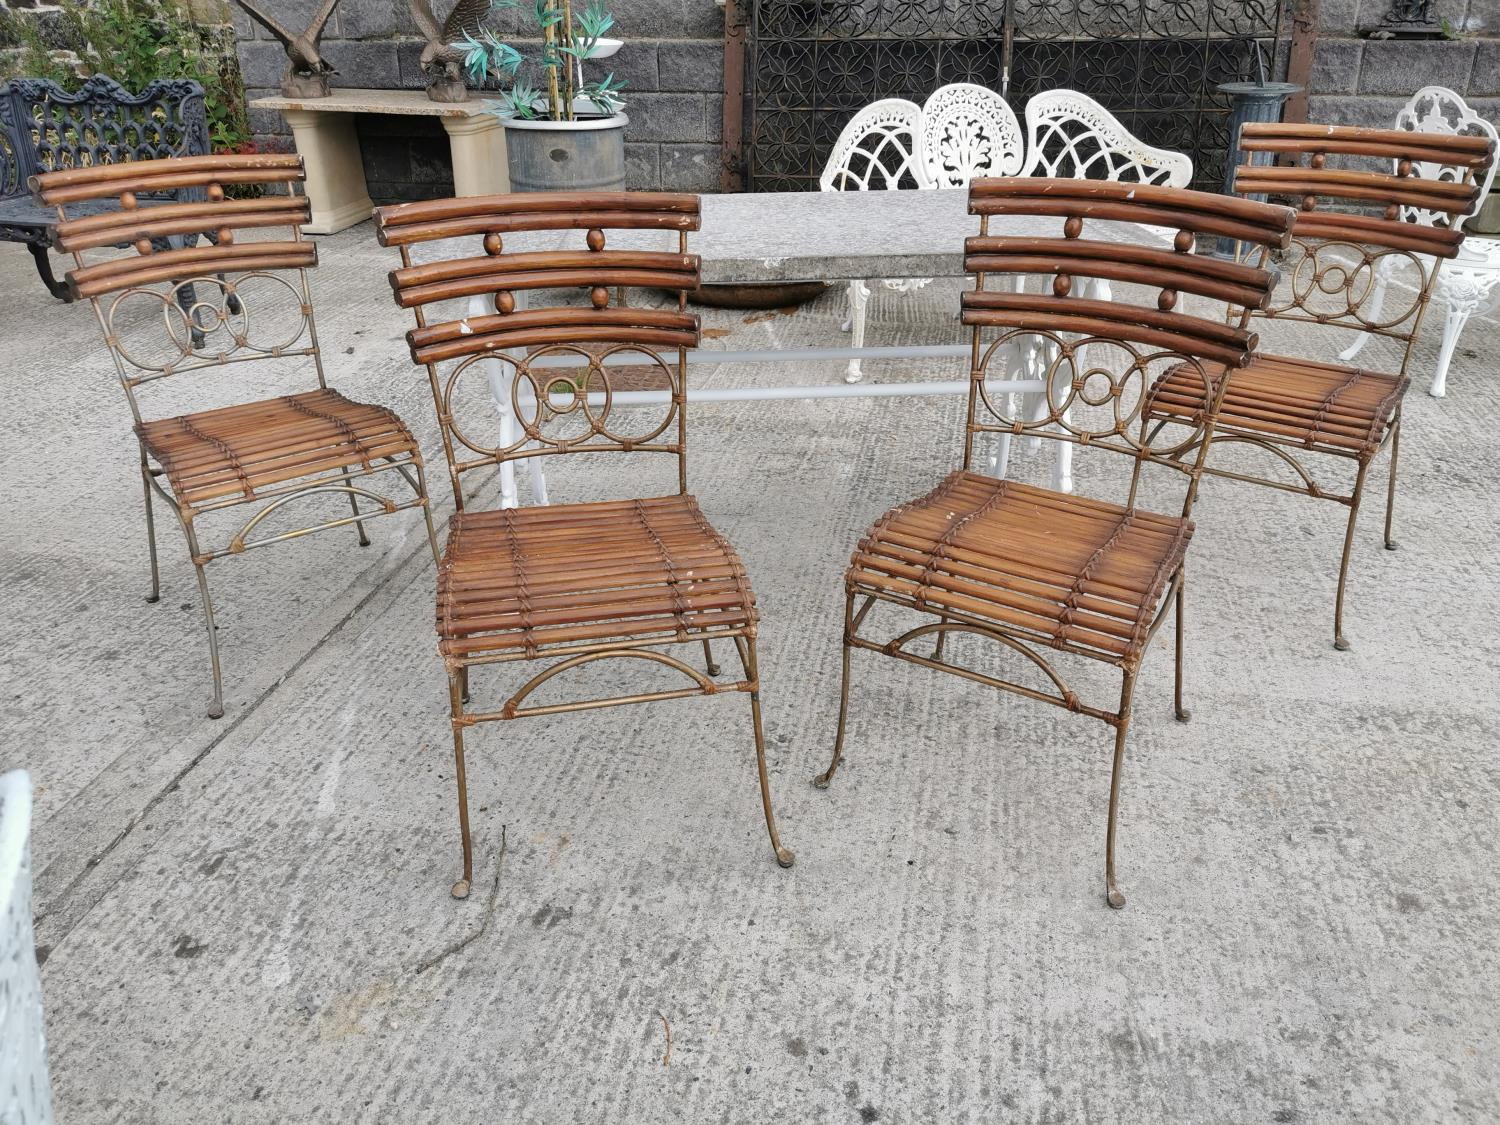 Set of four wrought iron and bamboo garden chairs.